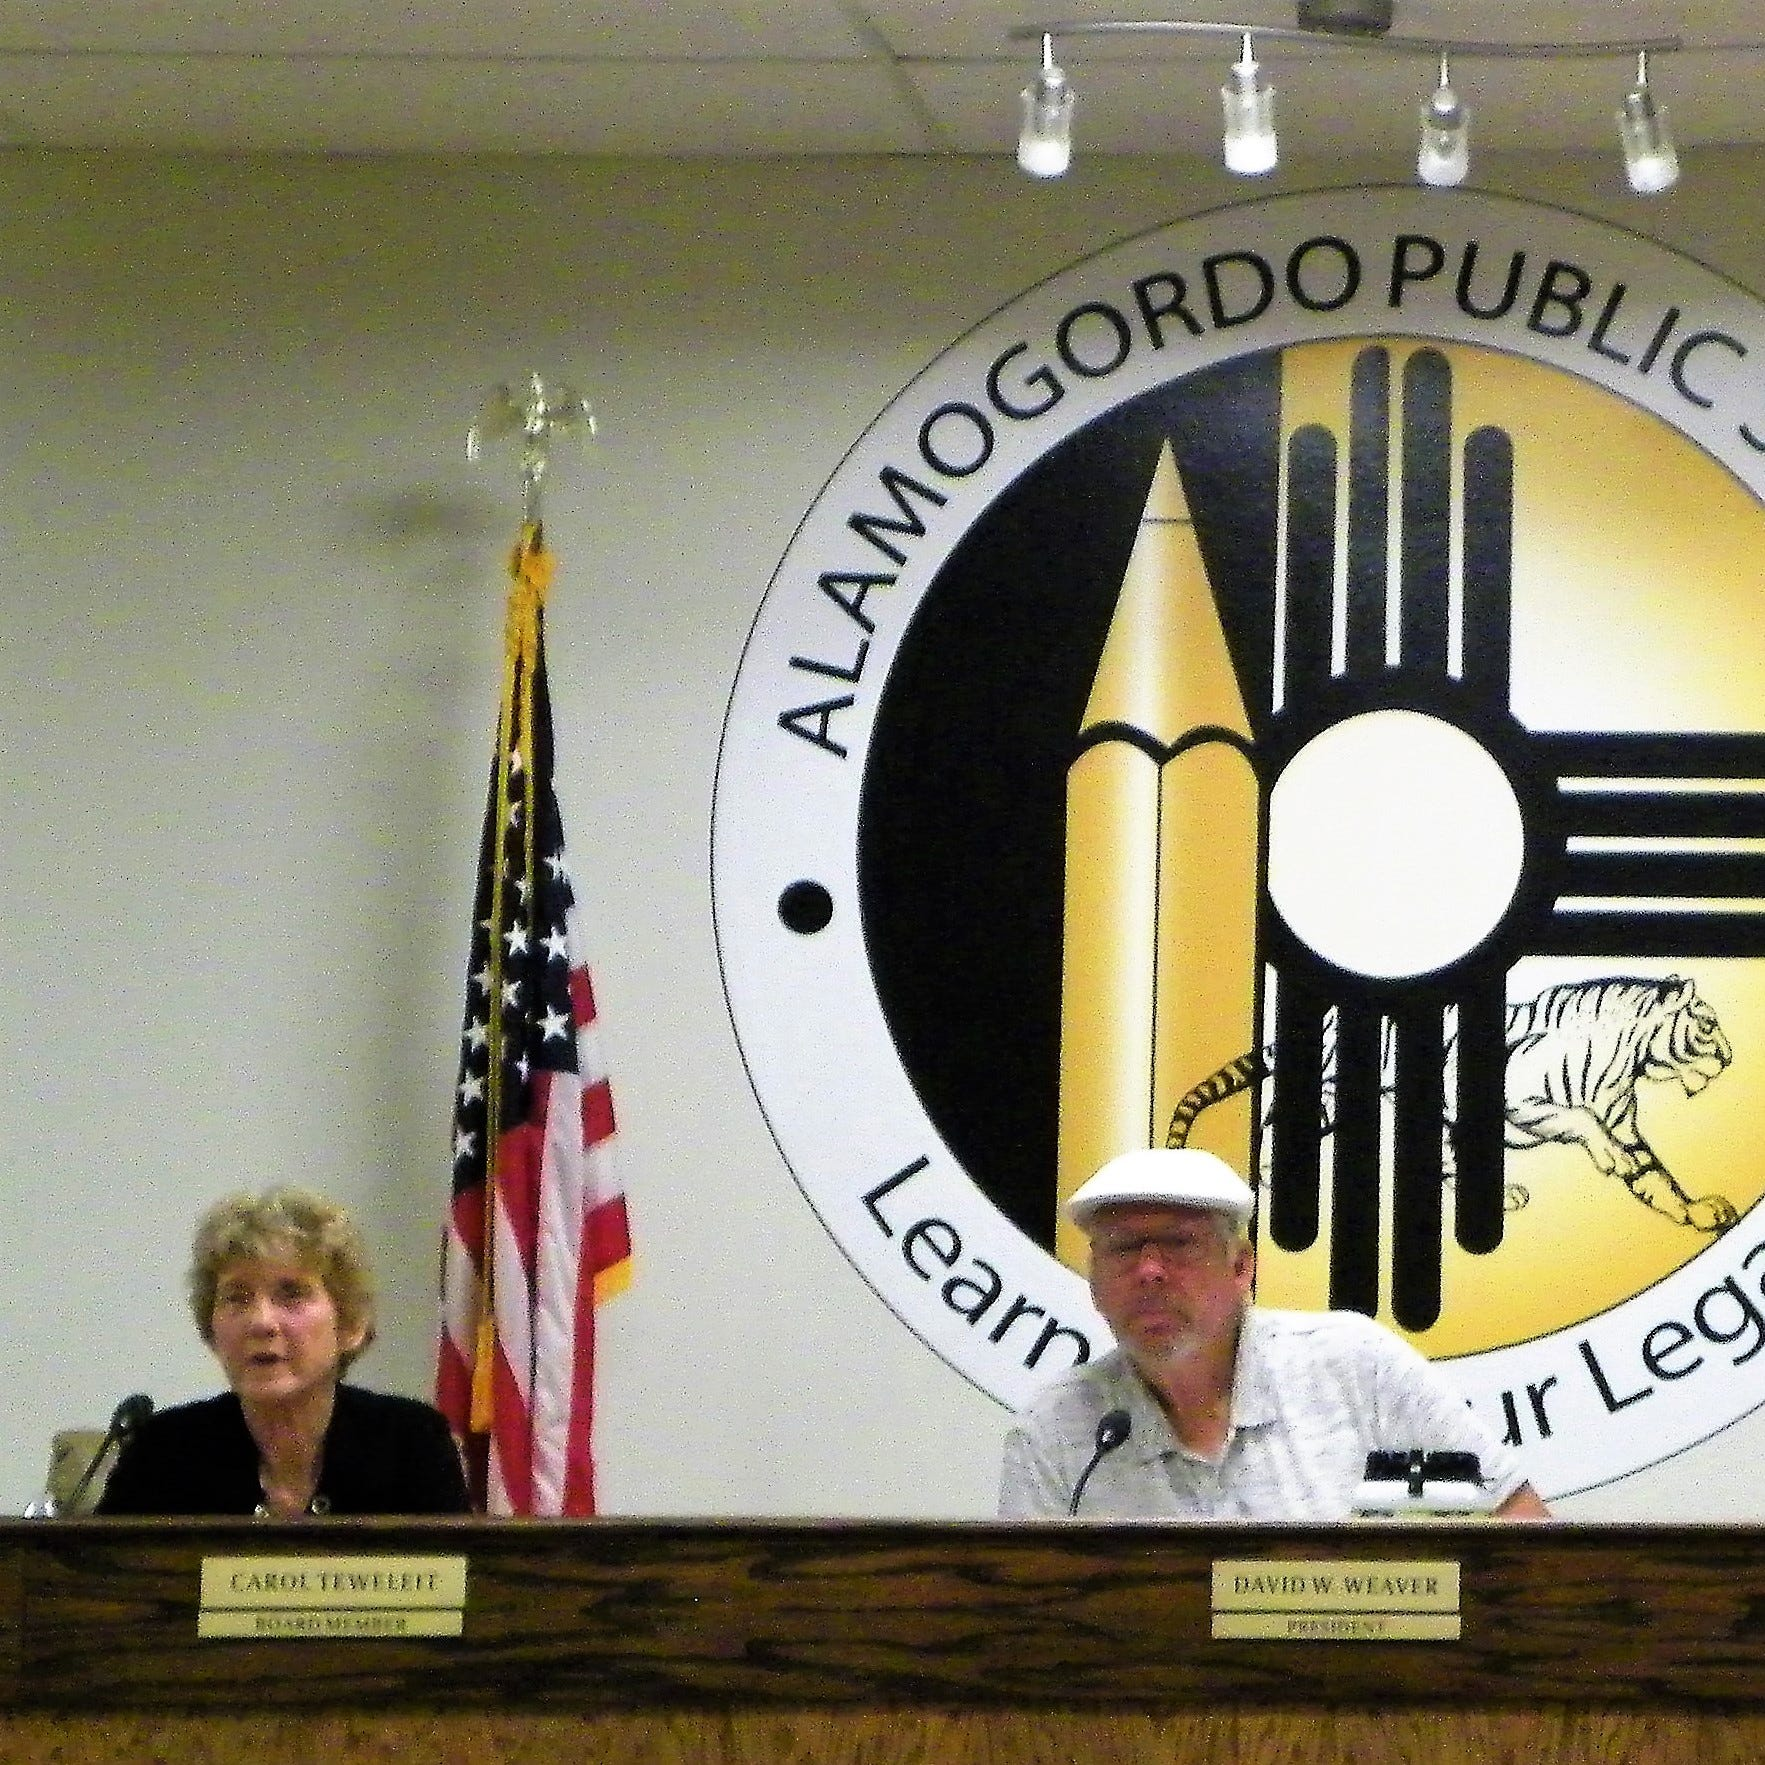 Alamogordo Public School's superintendent search to include consultant